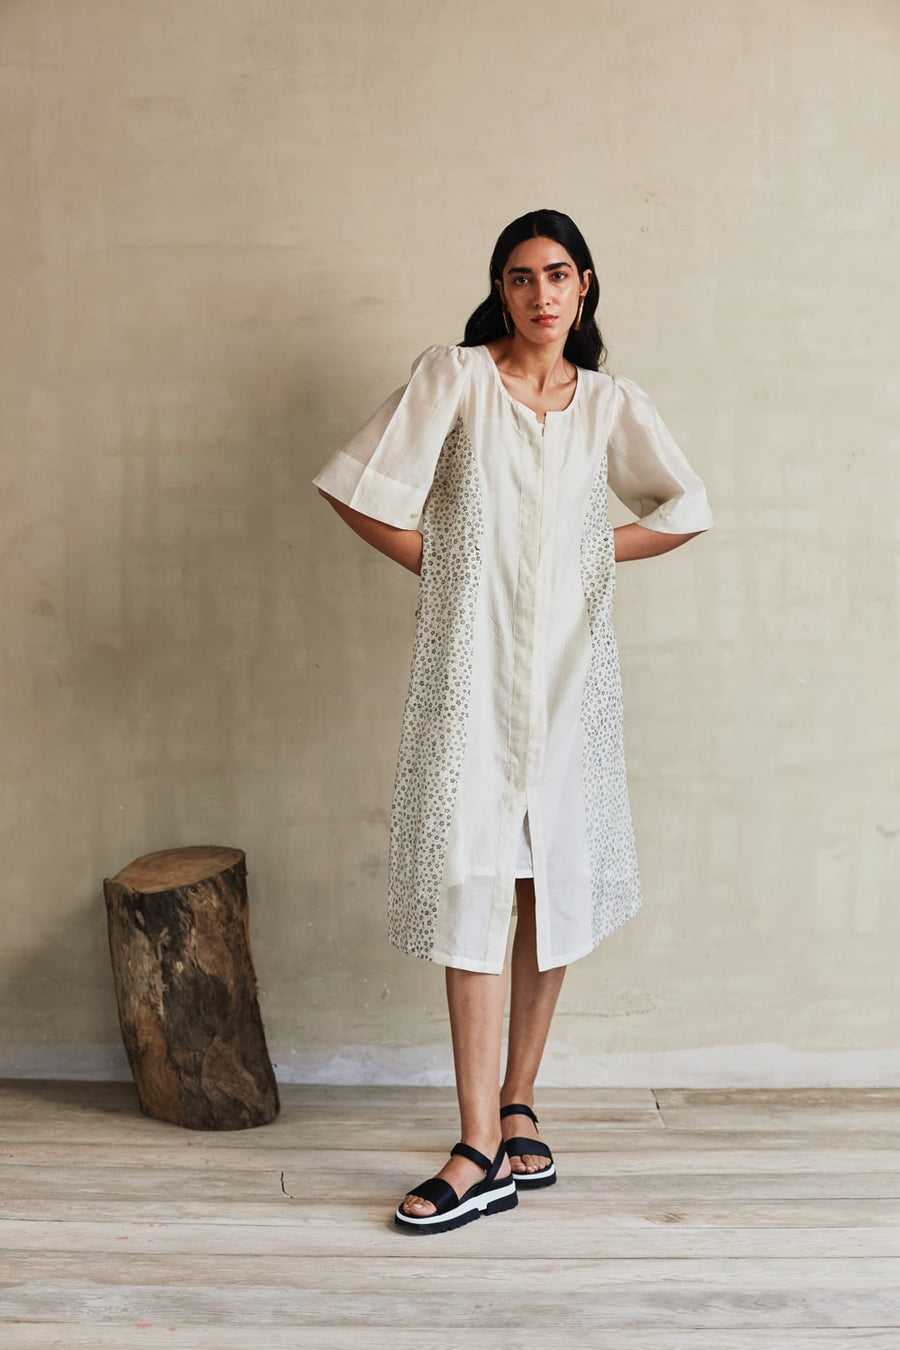 A Versatile Affair Shirt Dress - Ethical made fashion - onlyethikal